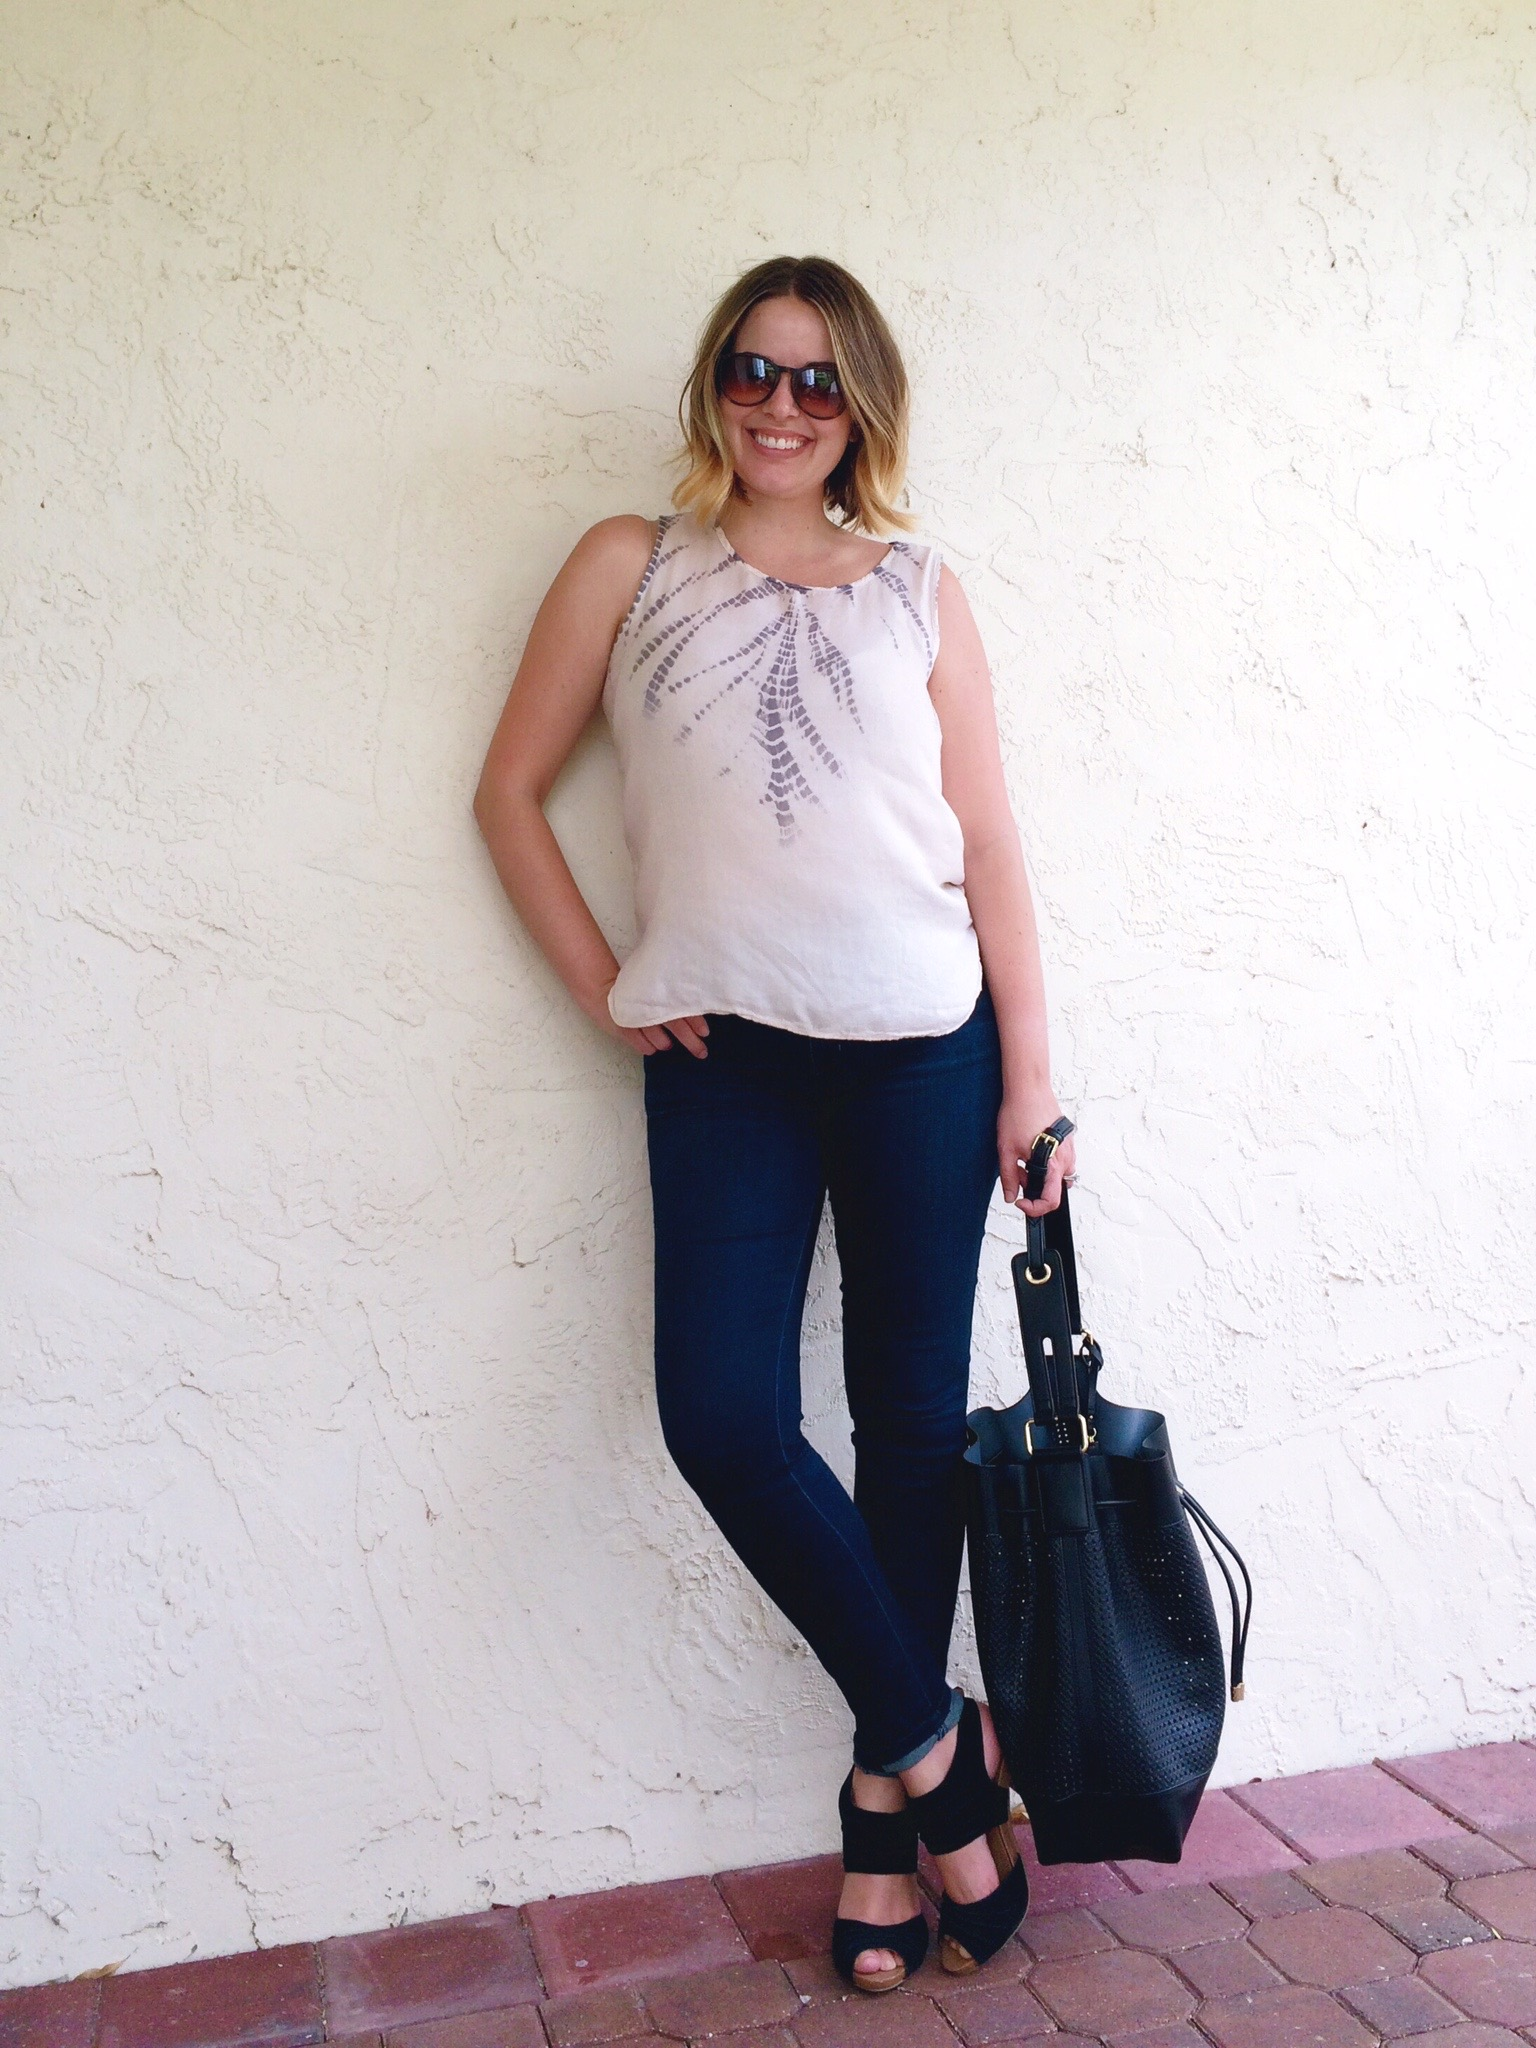 AE Skinny Jeggings, Vince Camuto Colby Bag, Olive and Oak Feathered Tie Dye Tank, Seychelles Gypsy Sandal, Style Blogger, Outfit Ideas